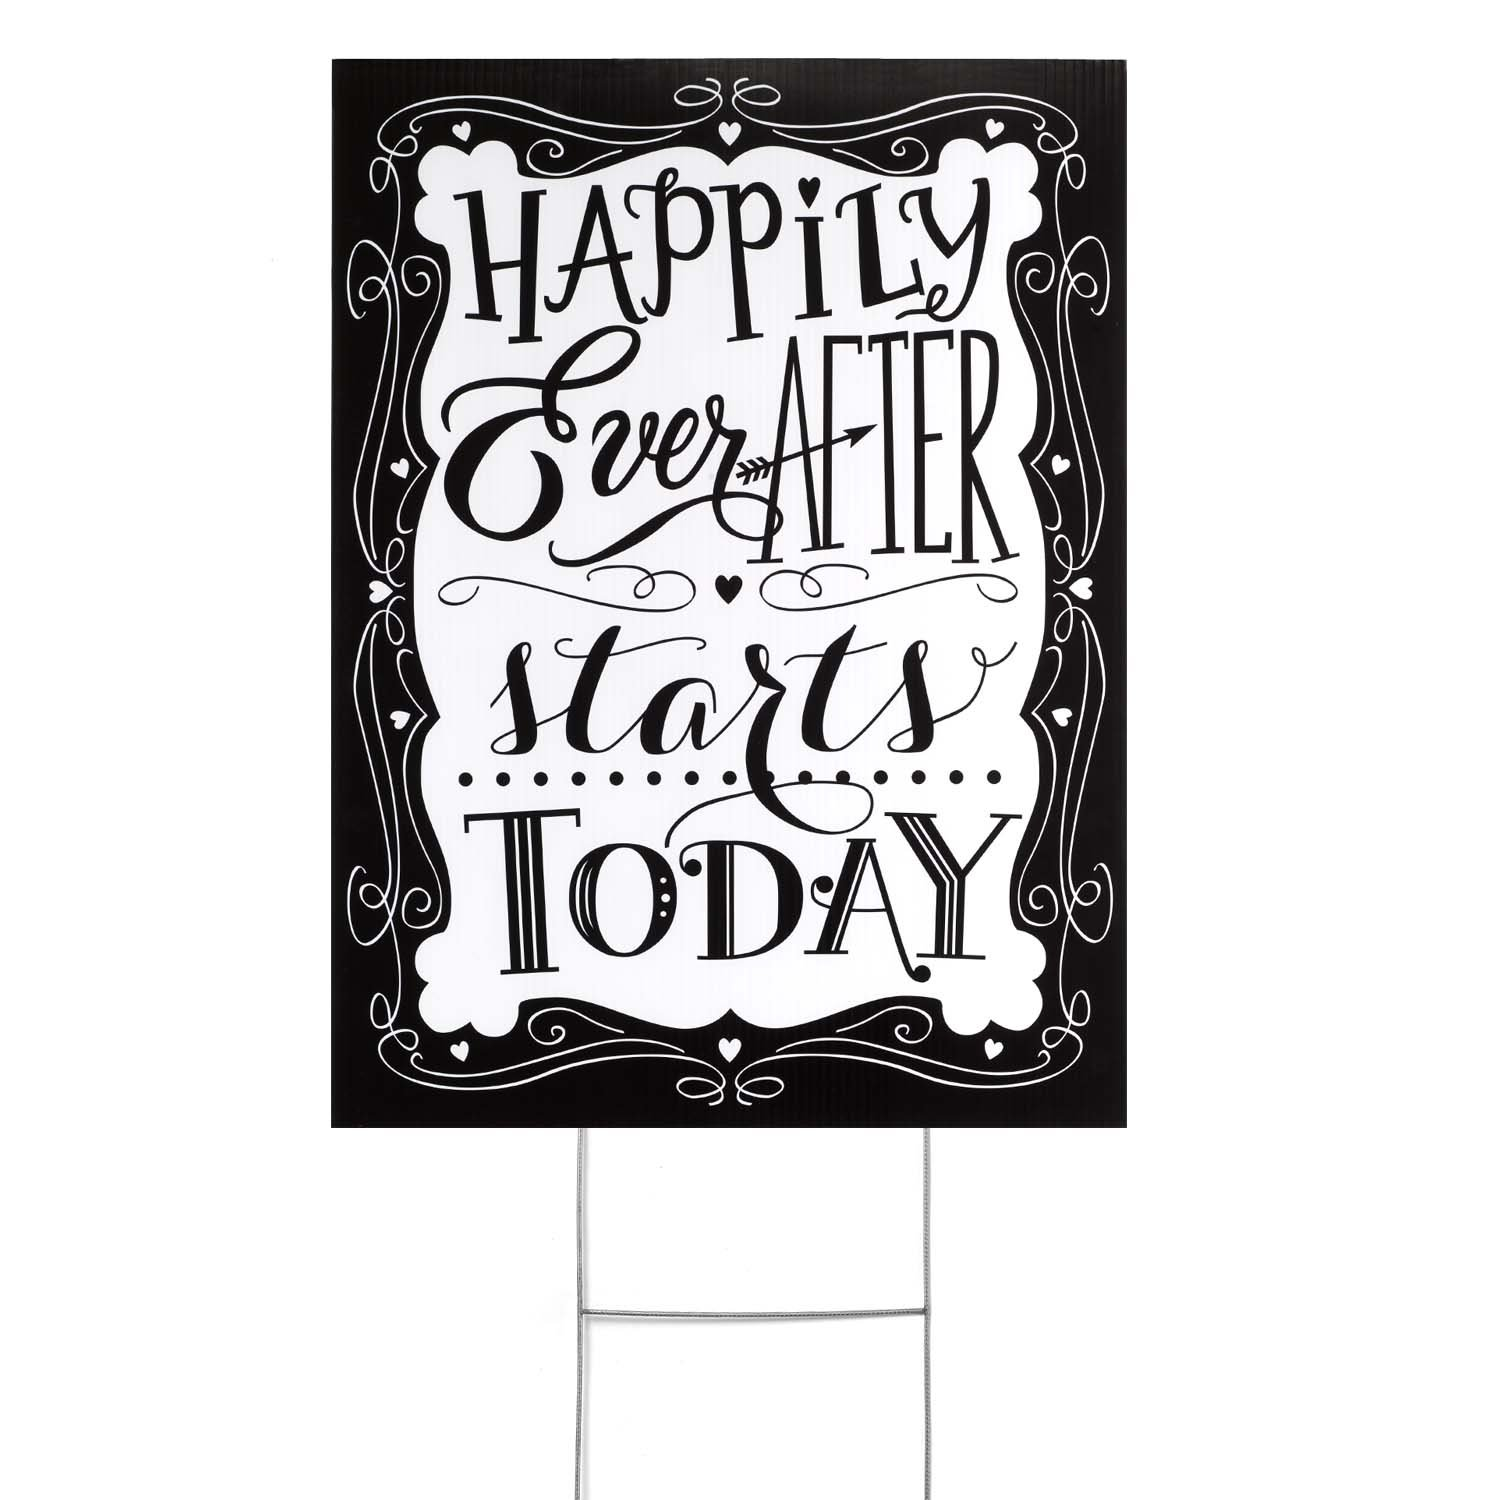 designer online Hortense B Hewitt yard Sign, Happily Happily Happily Ever After  alta quaità